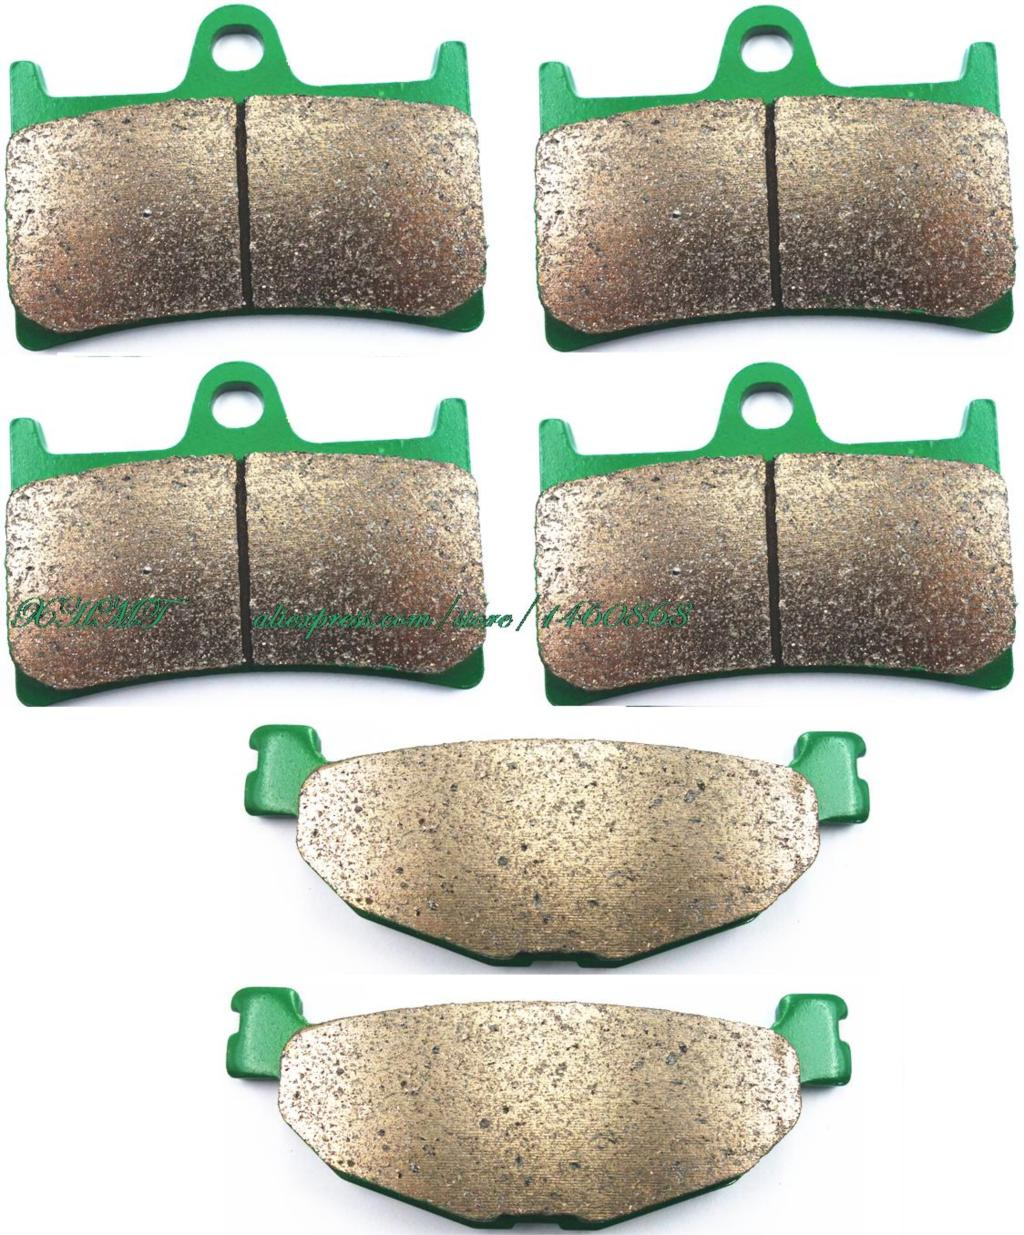 Brake Pads Set For Yamaha Xp500 Tmax500 T-Max500 Xp 500 T Max T-Max Tmax 2008 2009 2010 2011 / Sv (Tech Max) Abs&Noabs 2011 & Up